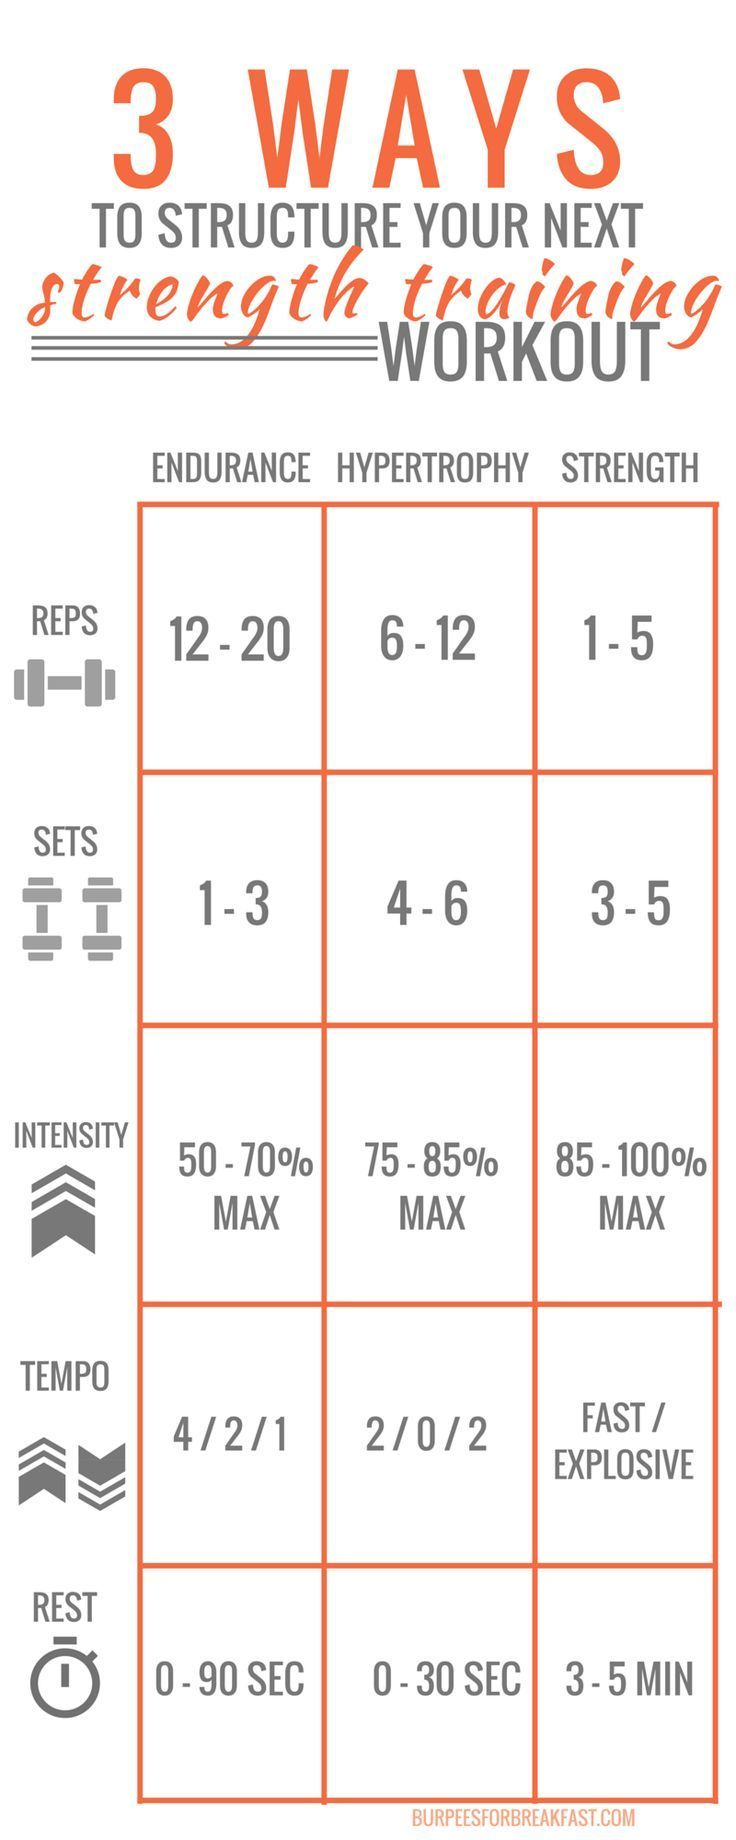 Strength training workout 3 ways to structure your next one awesome guide for setting up your personal weight training plan reps sets intensity weight lifting chartweight geenschuldenfo Images